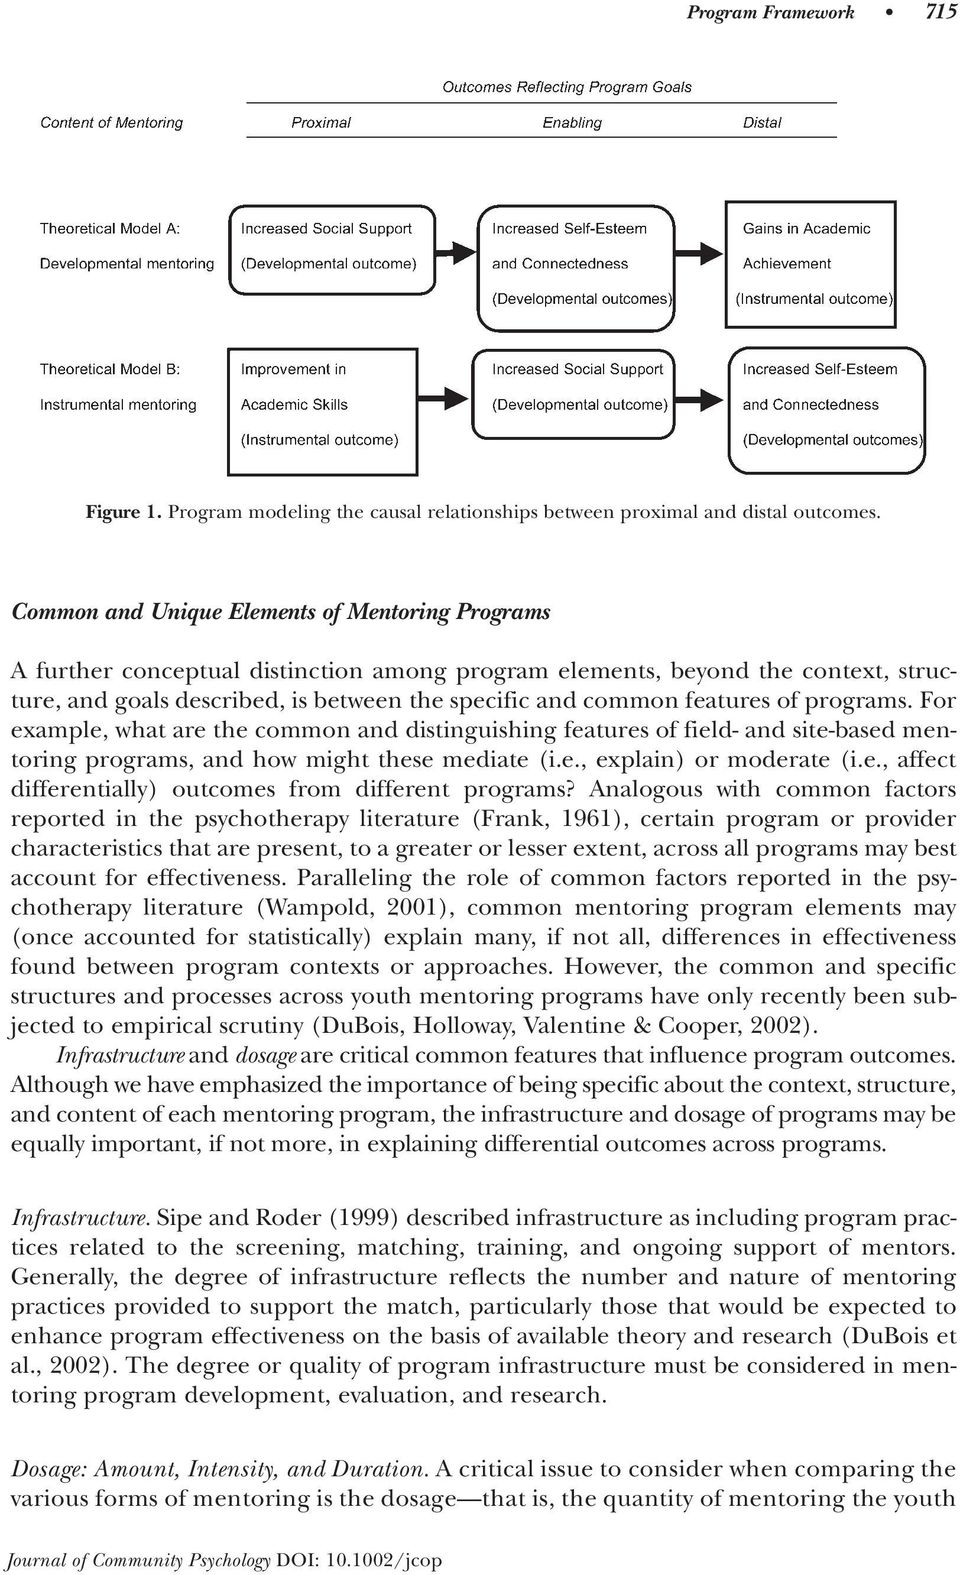 features of programs. For example, what are the common and distinguishing features of field- and site-based mentoring programs, and how might these mediate (i.e., explain) or moderate (i.e., affect differentially) outcomes from different programs?